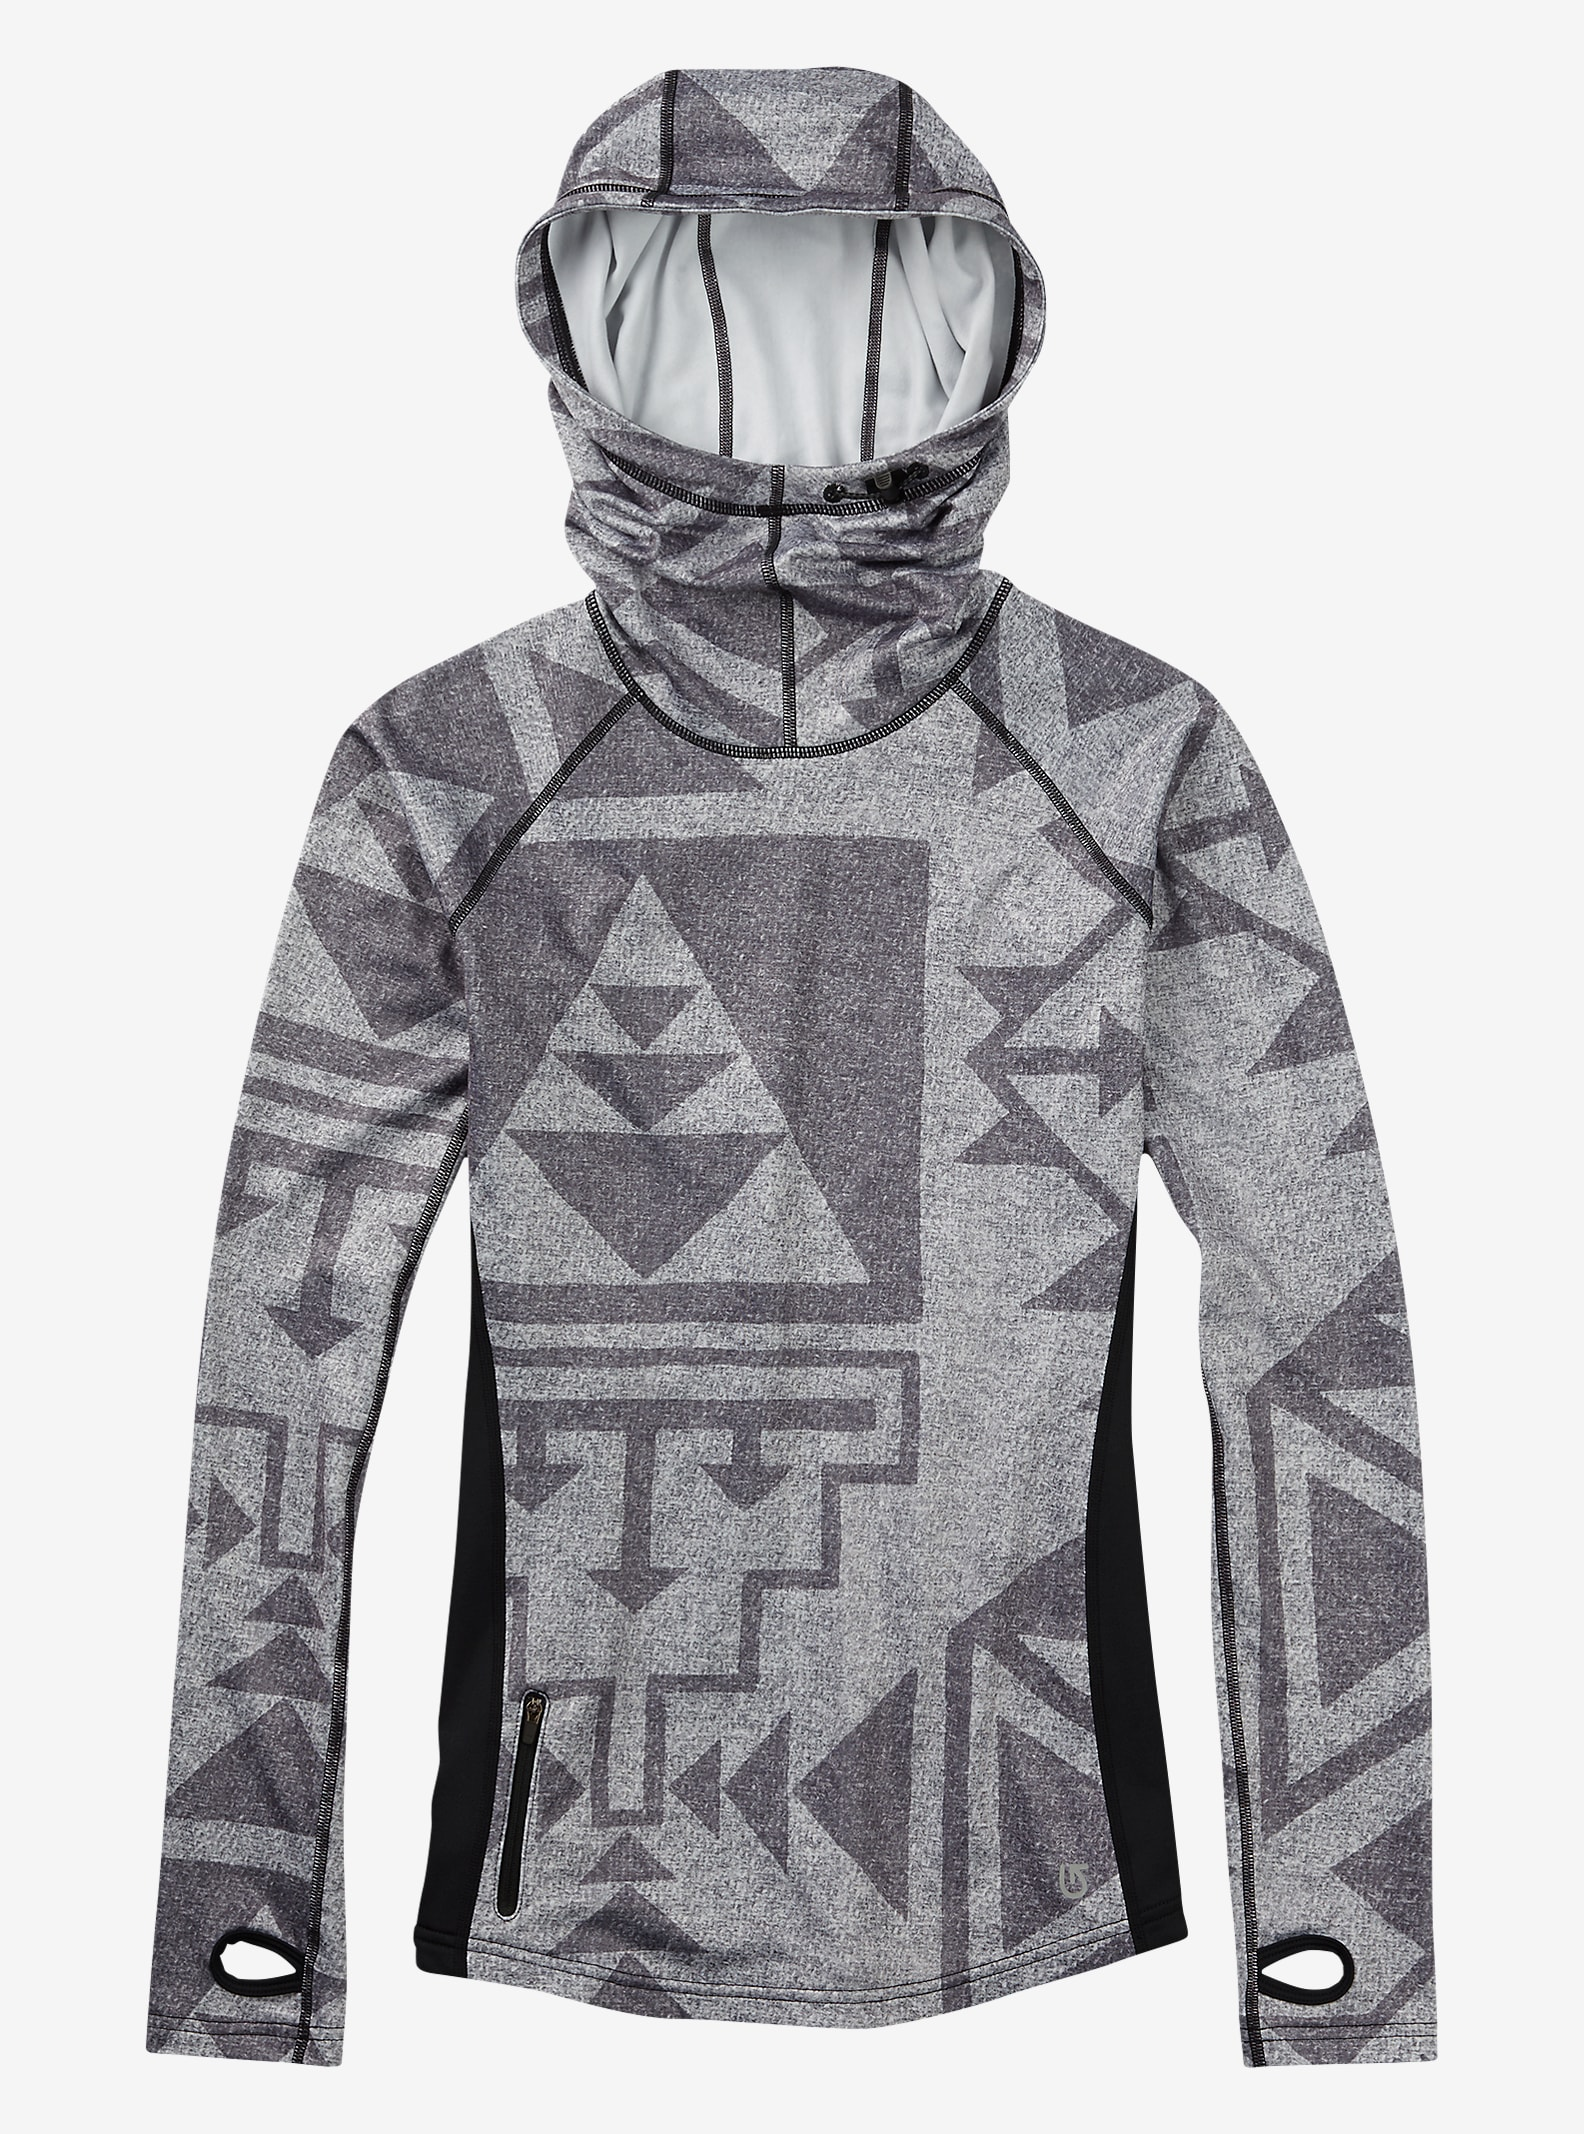 Burton Women's Active Top shown in Neu Nordic